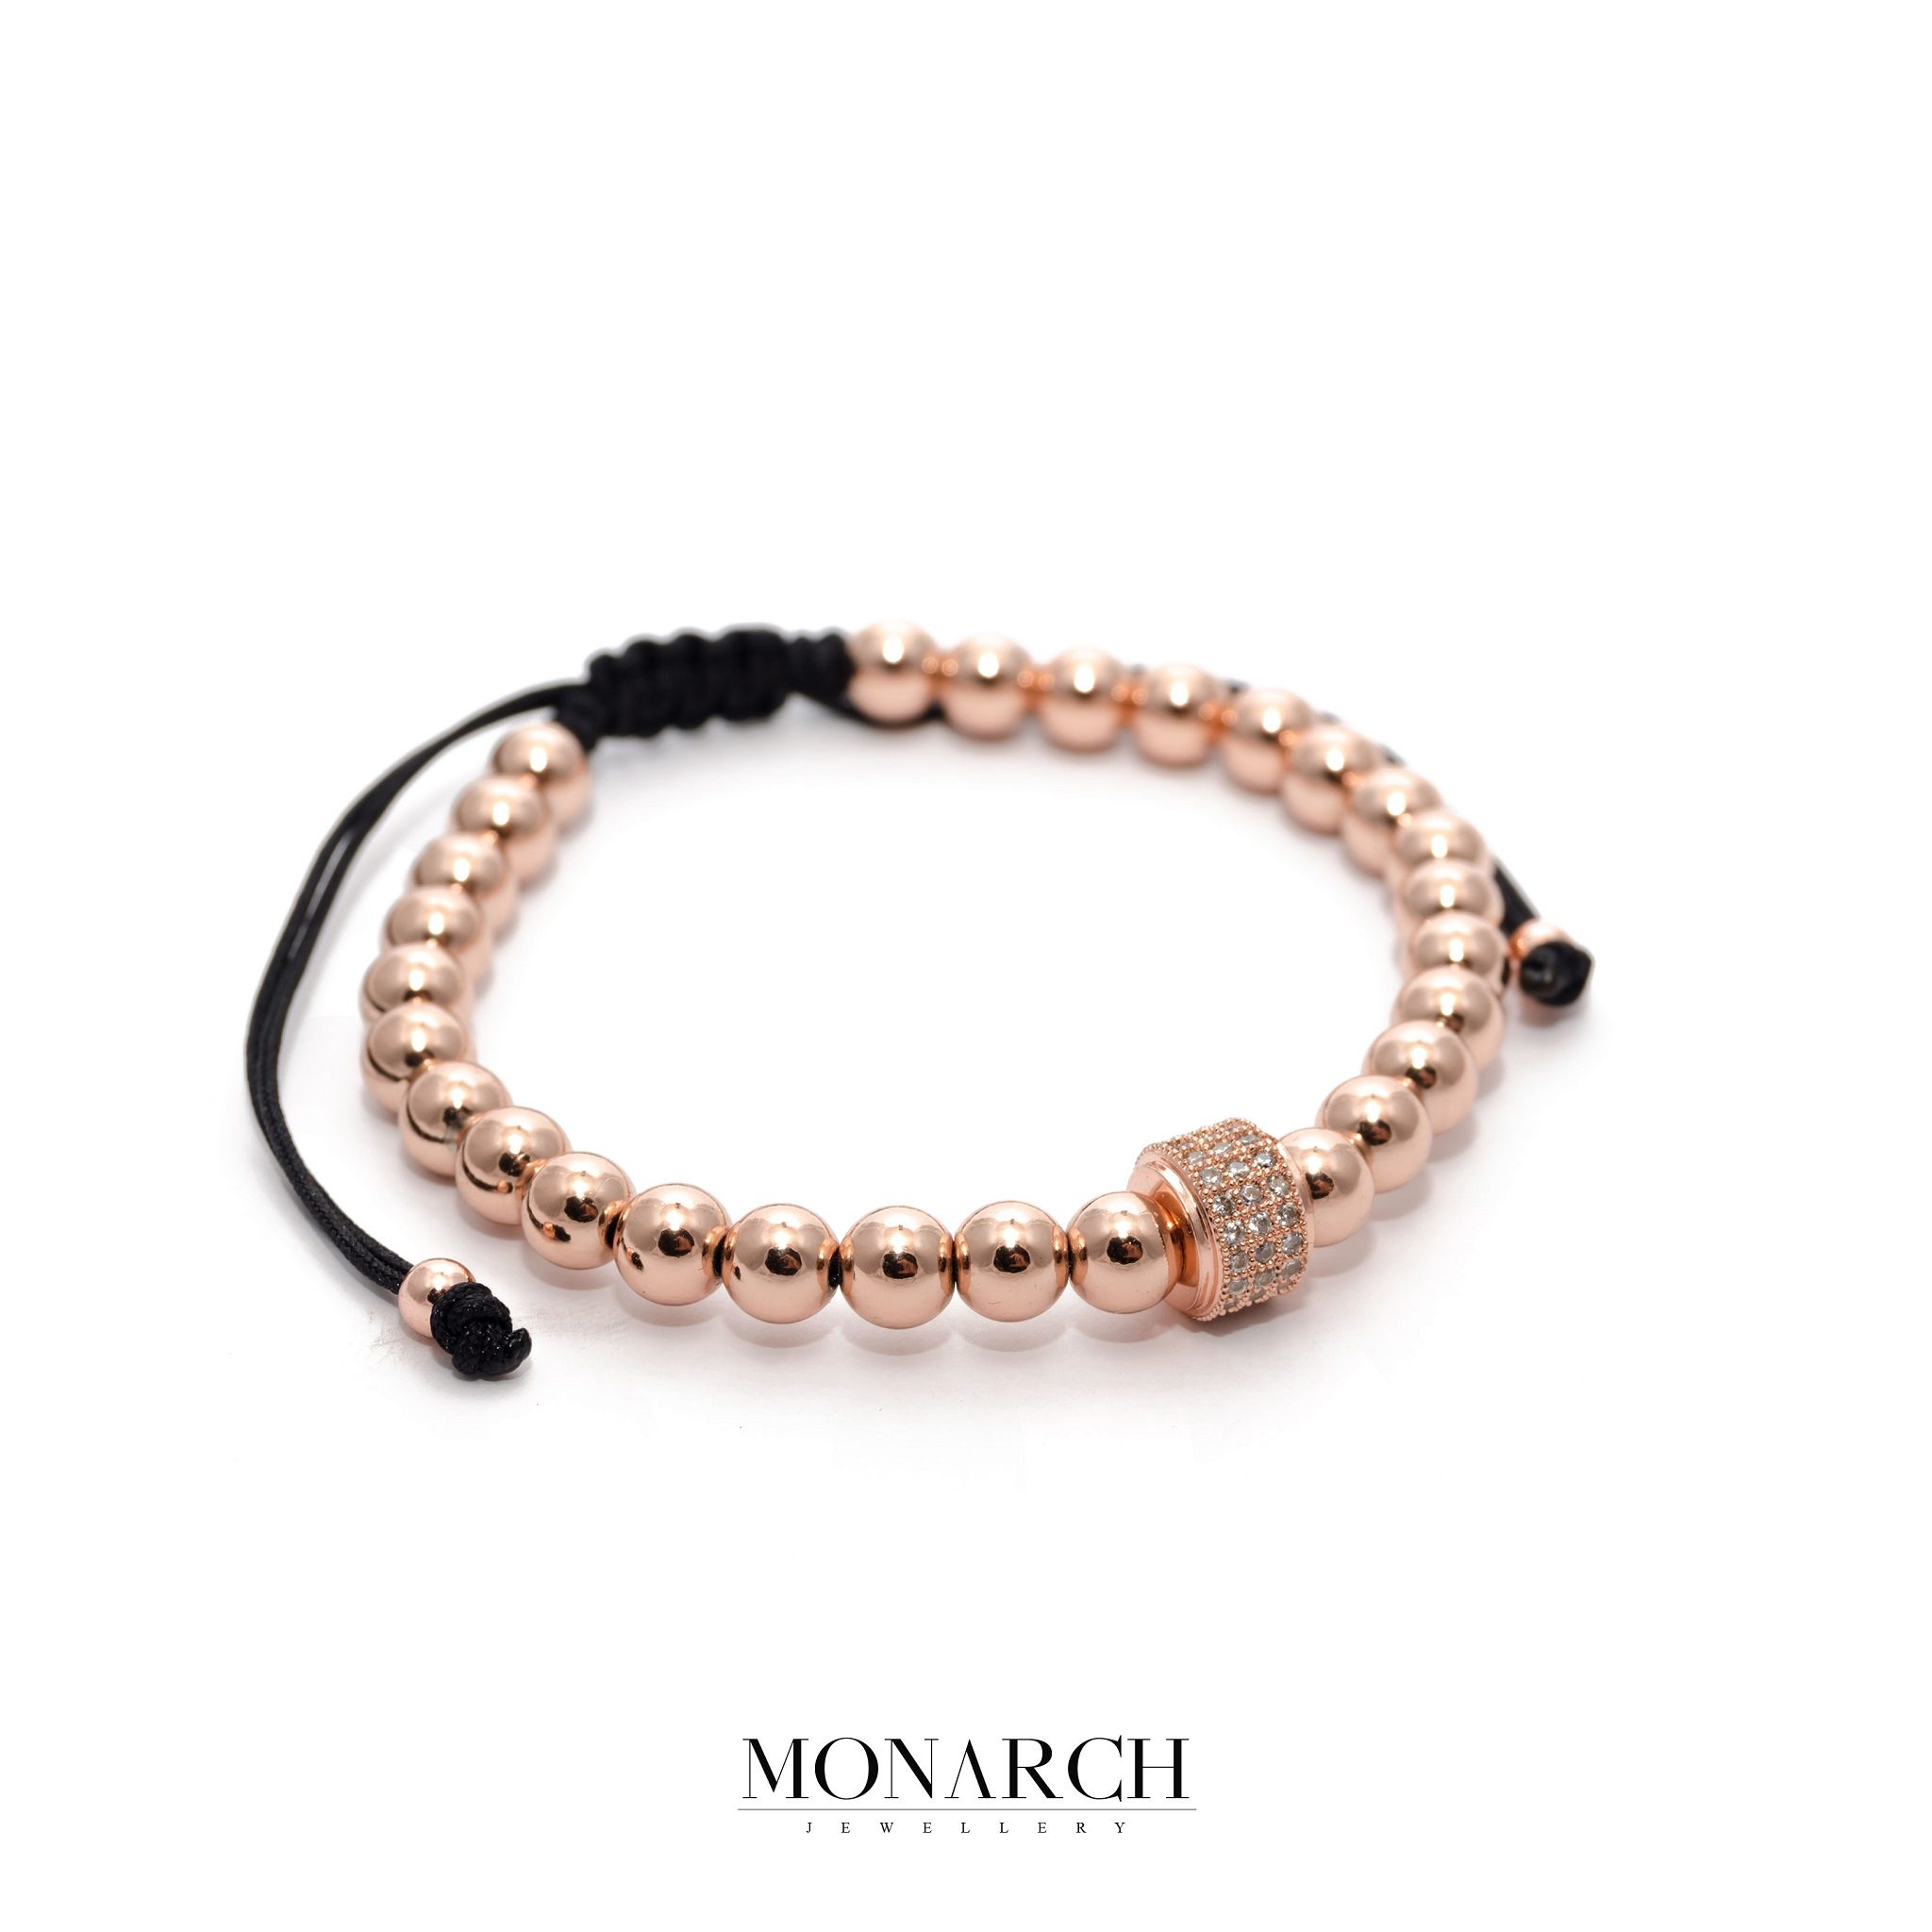 58-Monarch-Jewellery-24K-Rose-Gold-Solo-Circum-Macrame-Bracelet